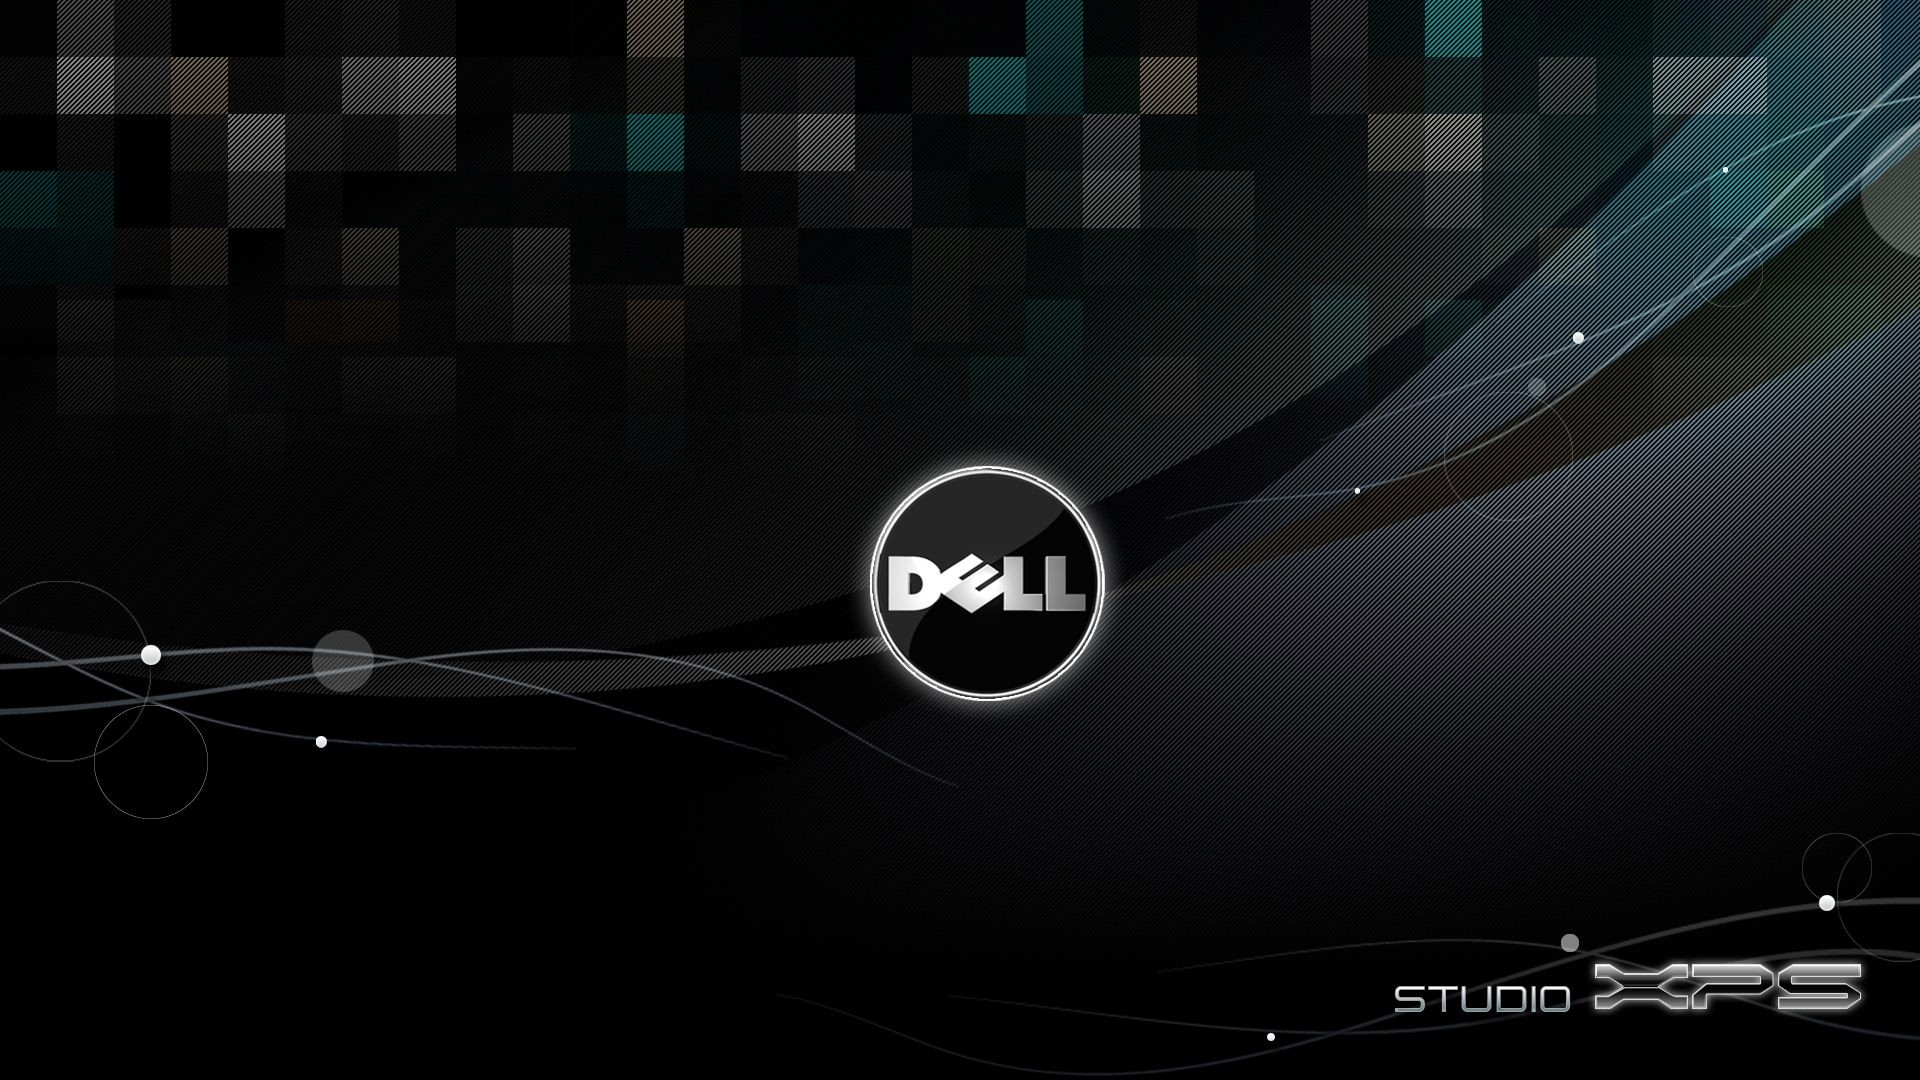 1920x1080  Dell Wallpapers, Fantastic Dell Pictures | 2016 4K Ultra HD .